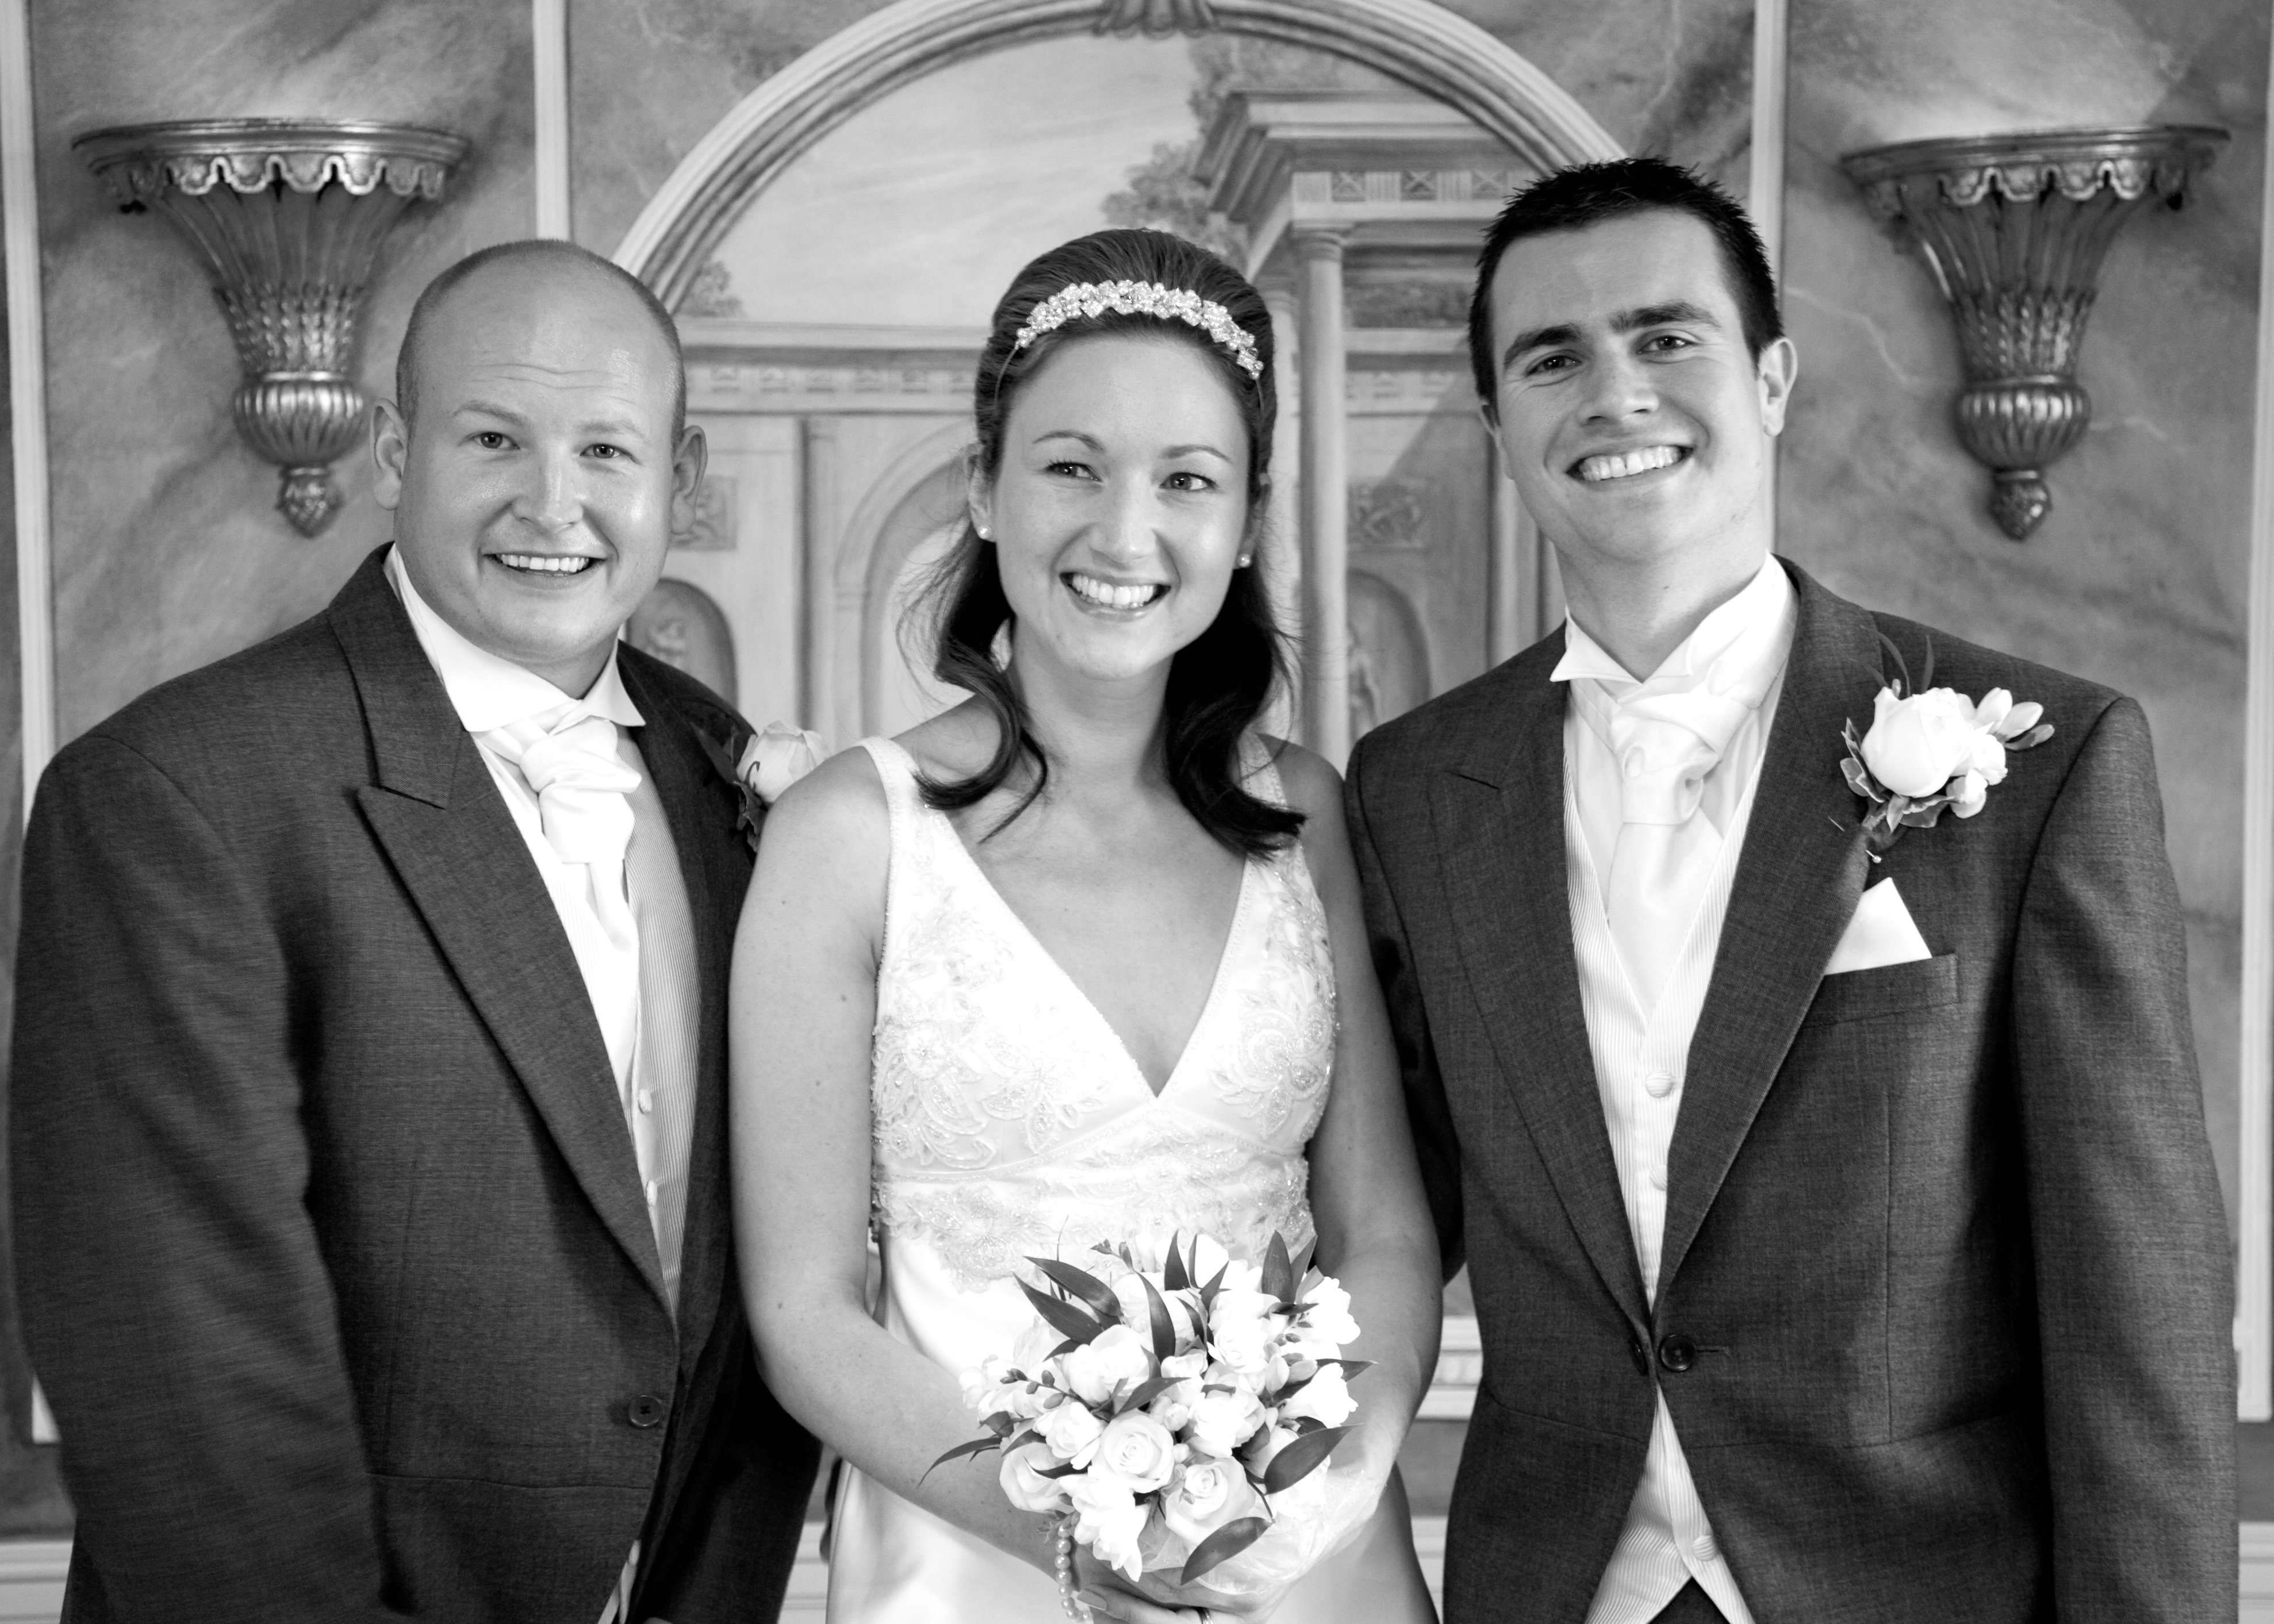 Bride, groom and best man